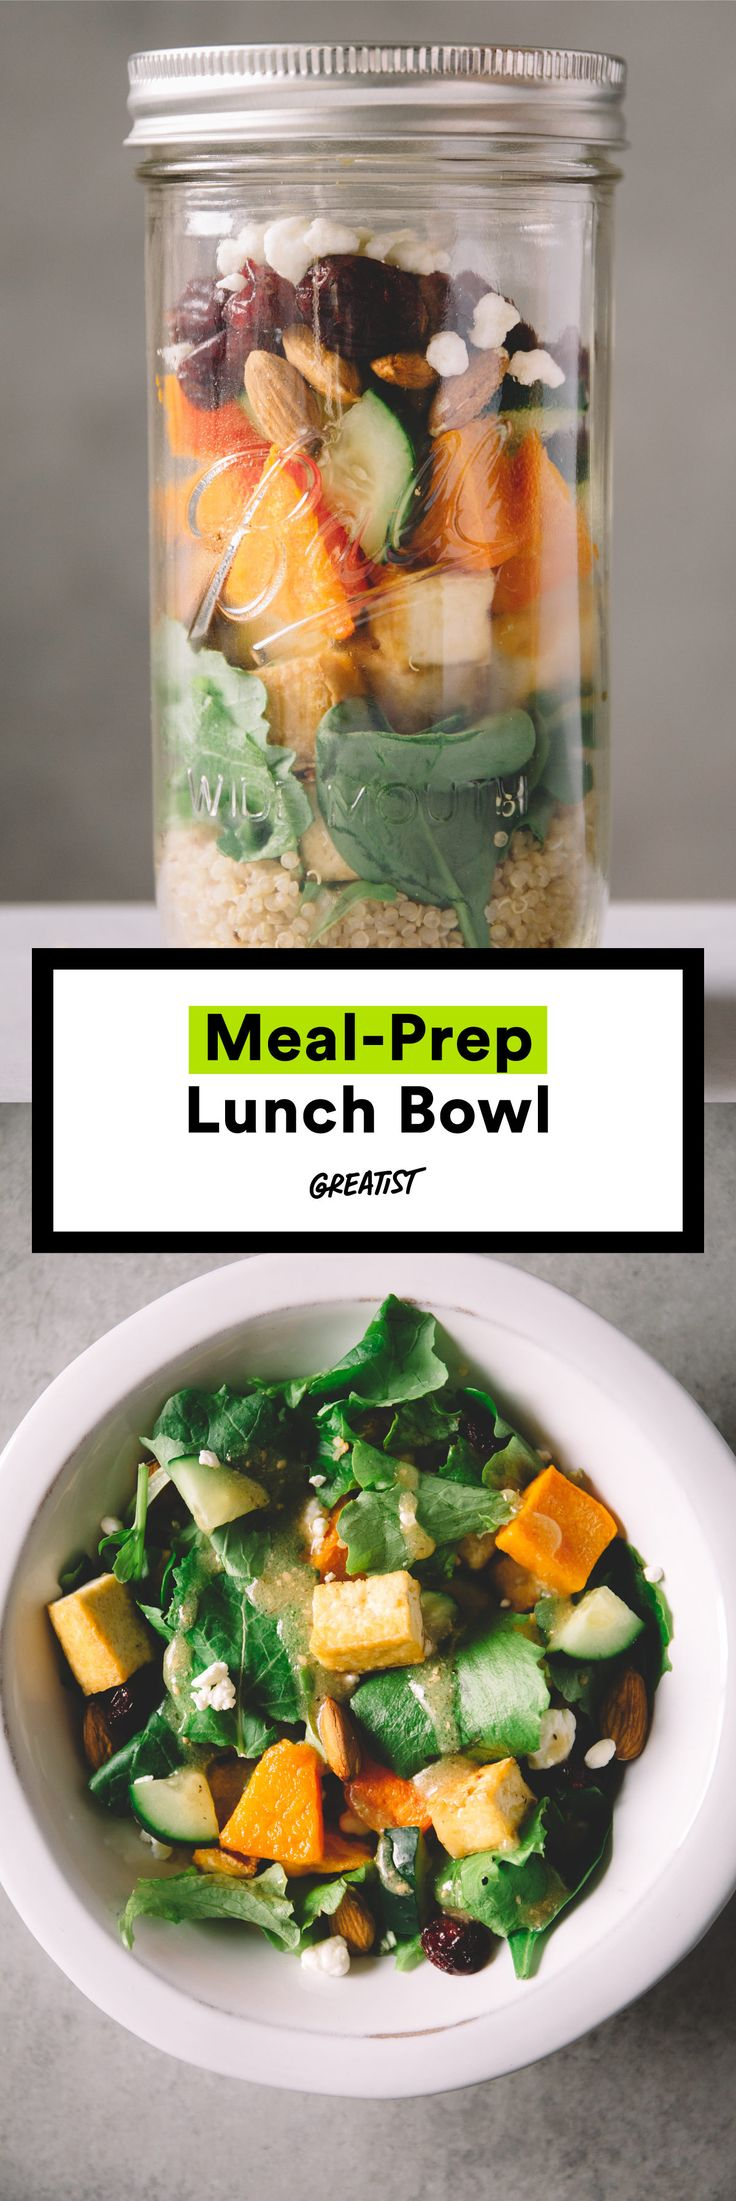 Just be sure to put your name on it so coworkers keep their hands off. #greatist https://greatist.com/eat/meal-prep-lunches-to-last-all-week